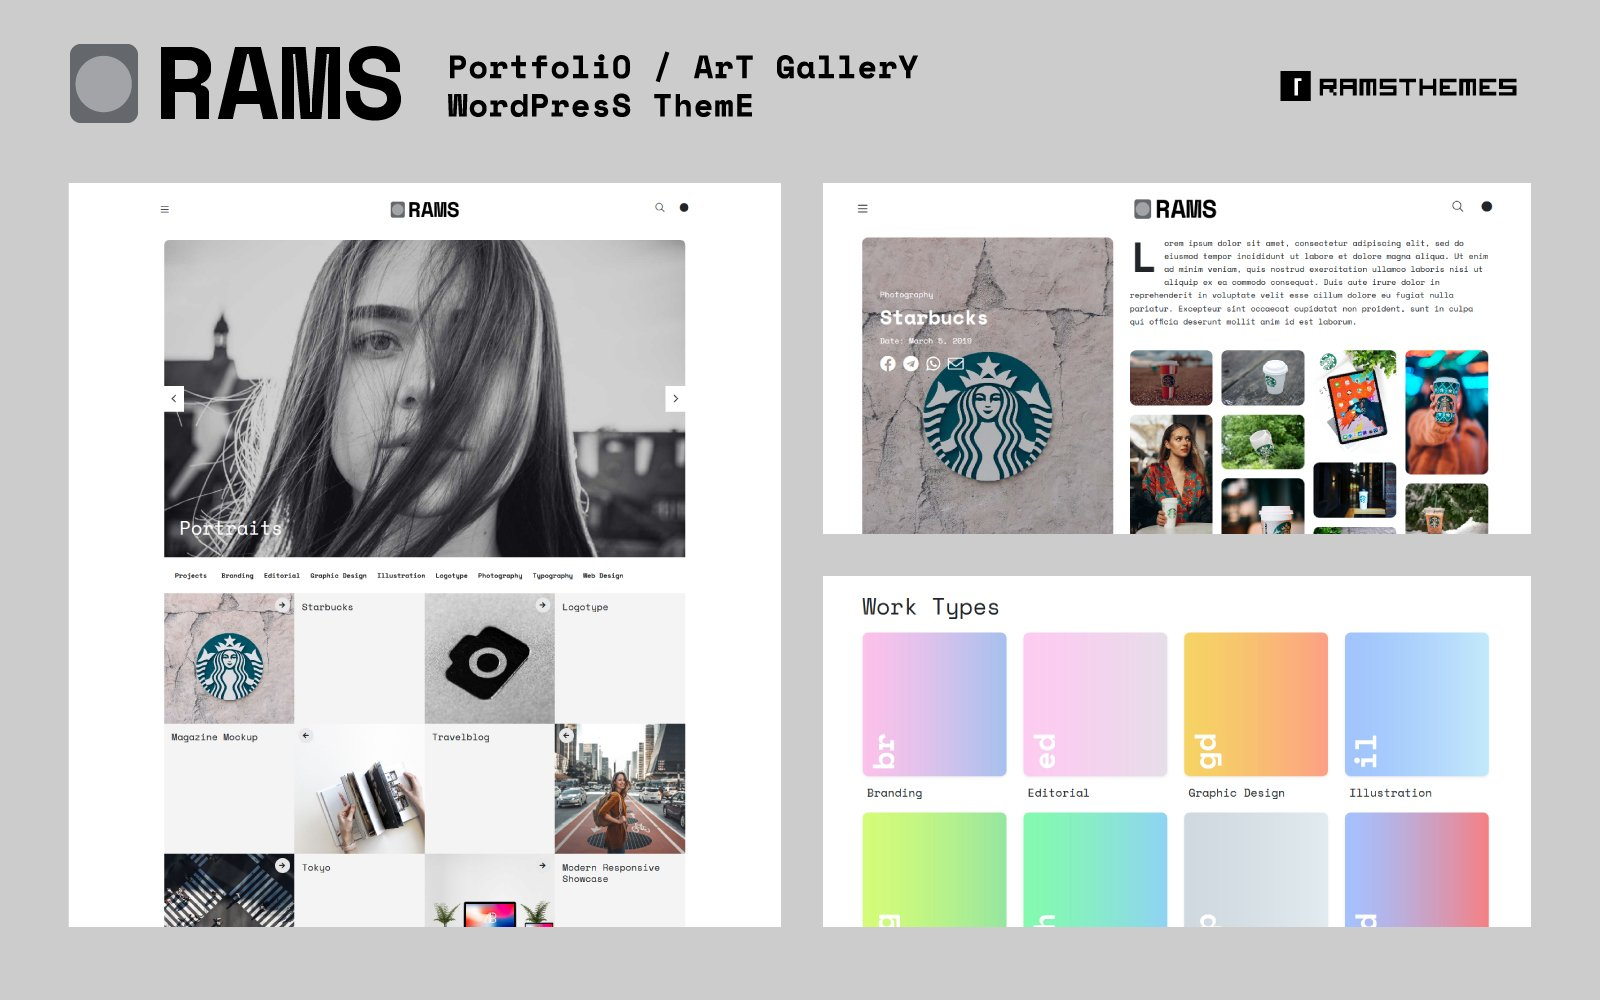 RAMS - Portfolio Art Gallery Bootstrap WordPress Theme WordPress Theme